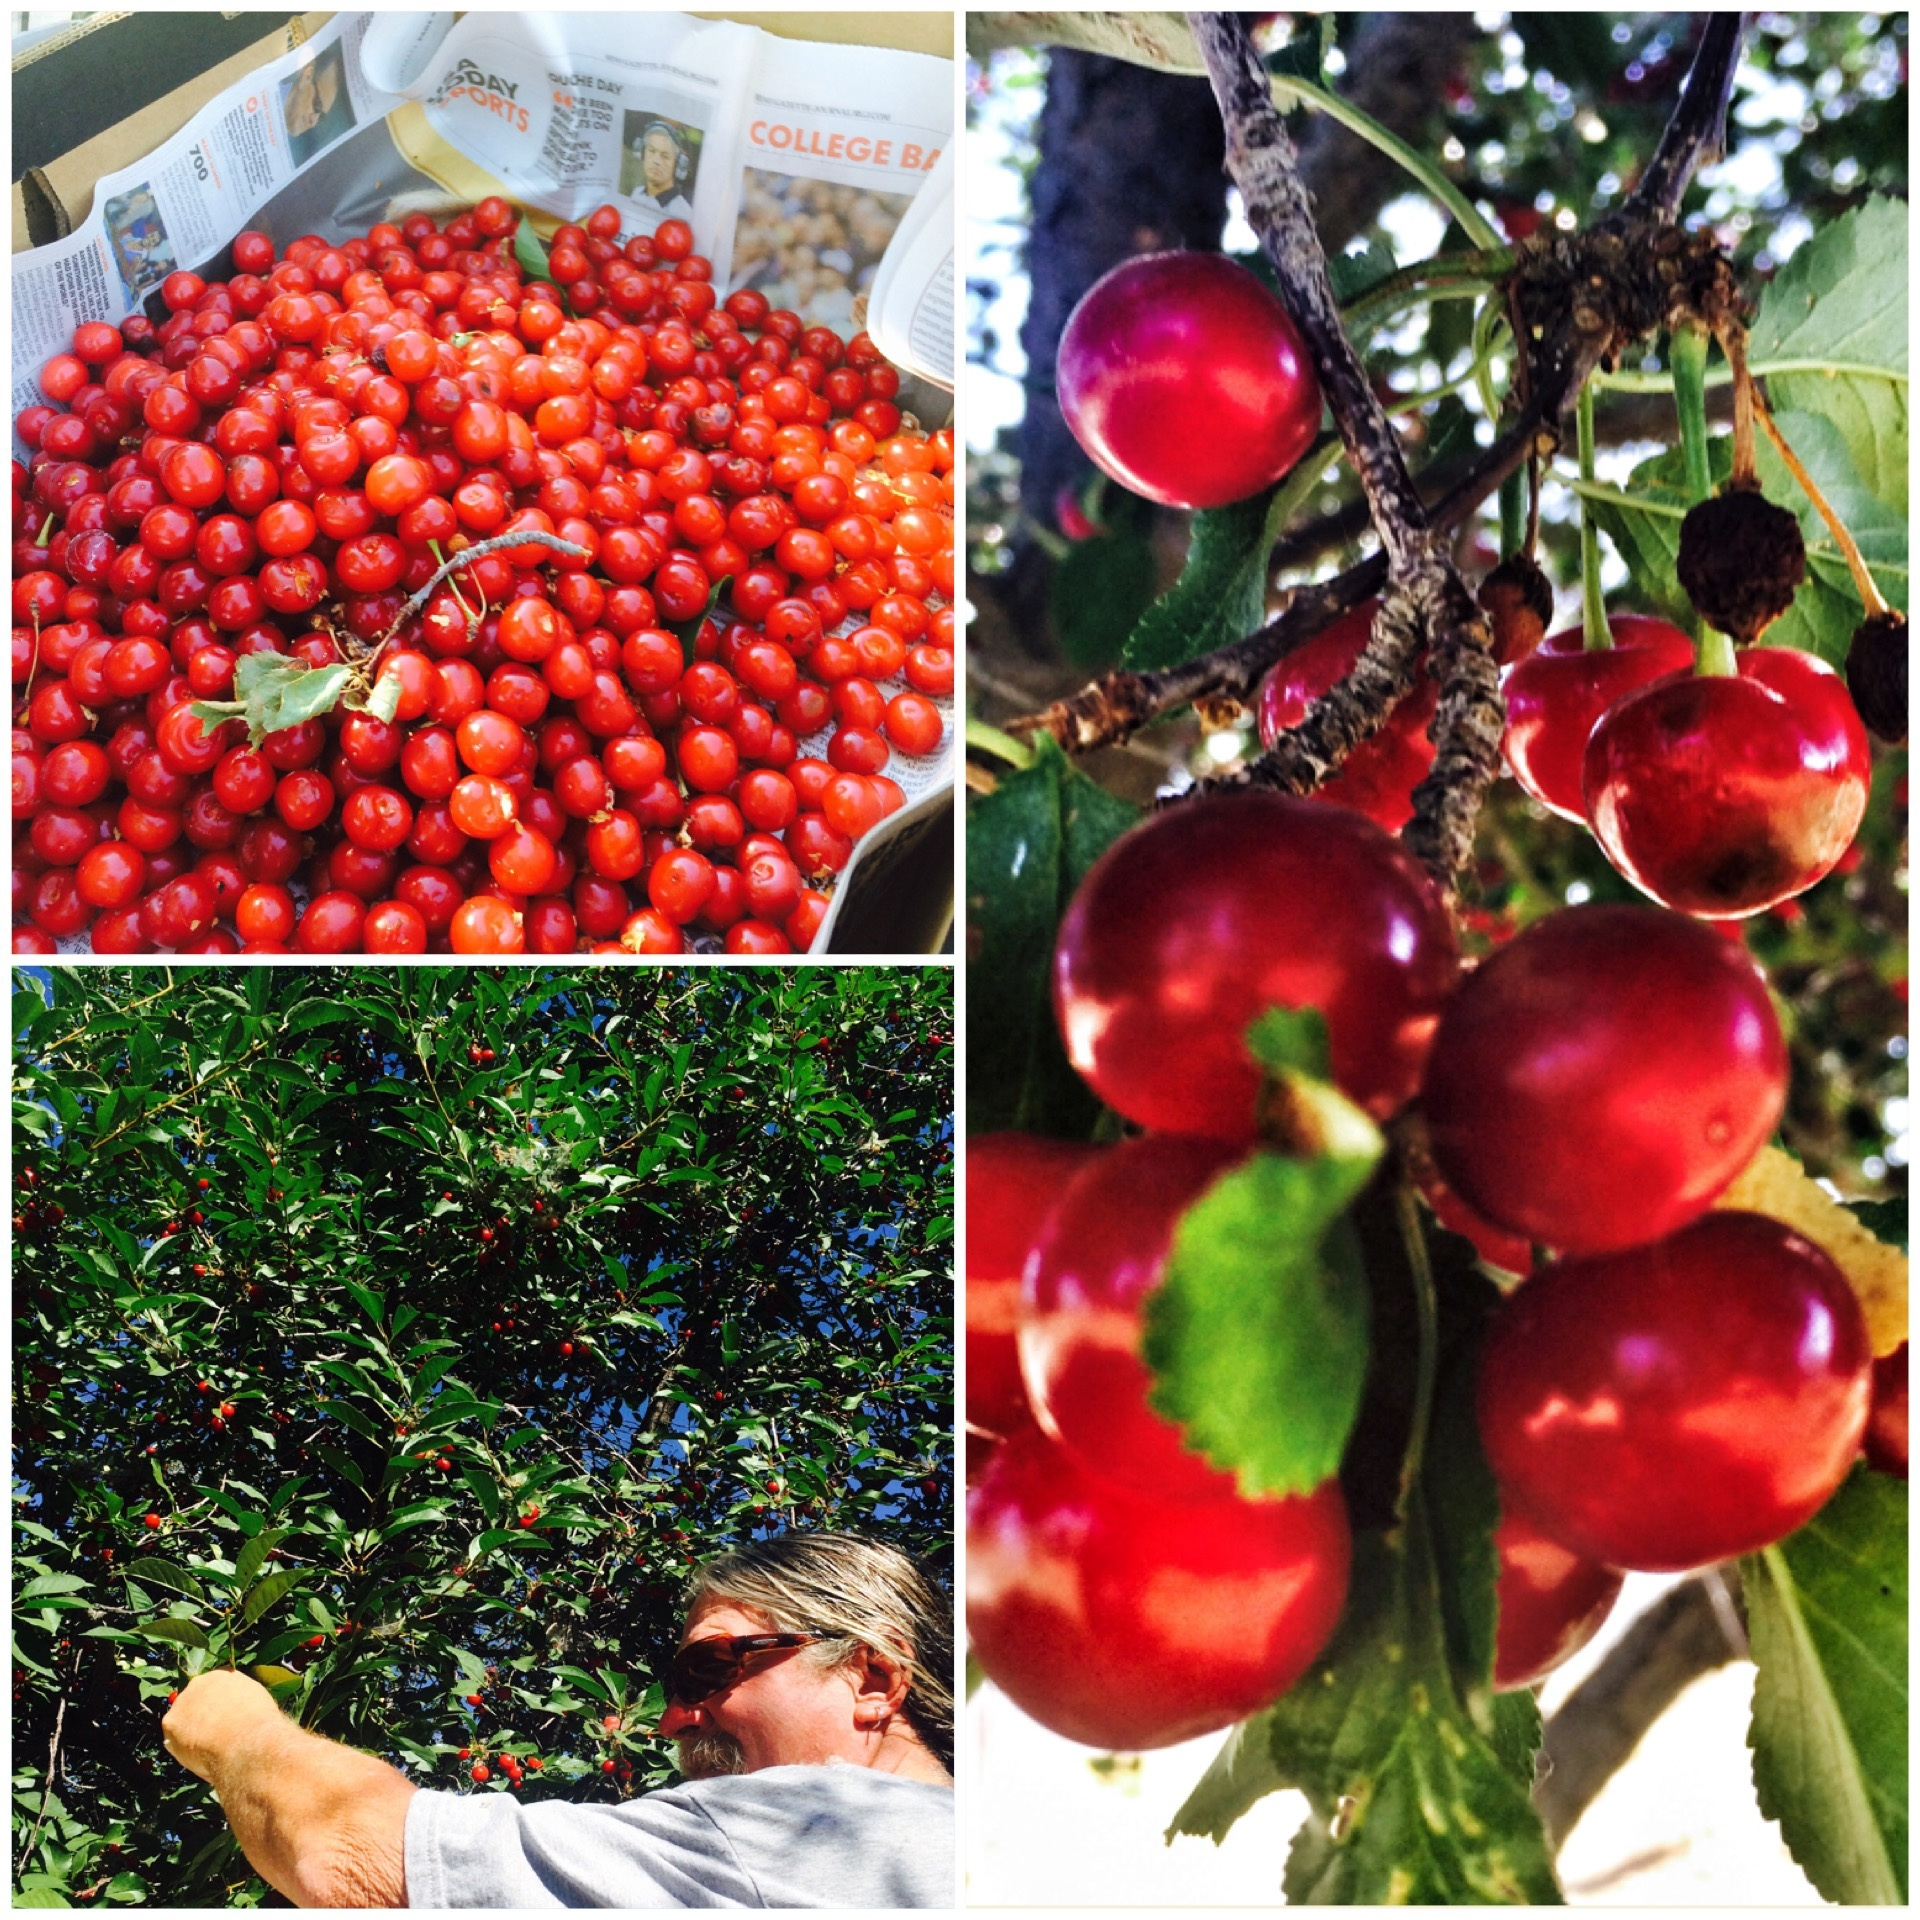 Earth Day - What's hot in Backyard Orchard CultureSelecting, transplanting, pollination, fertilizing, thinning and pruning your home orchard